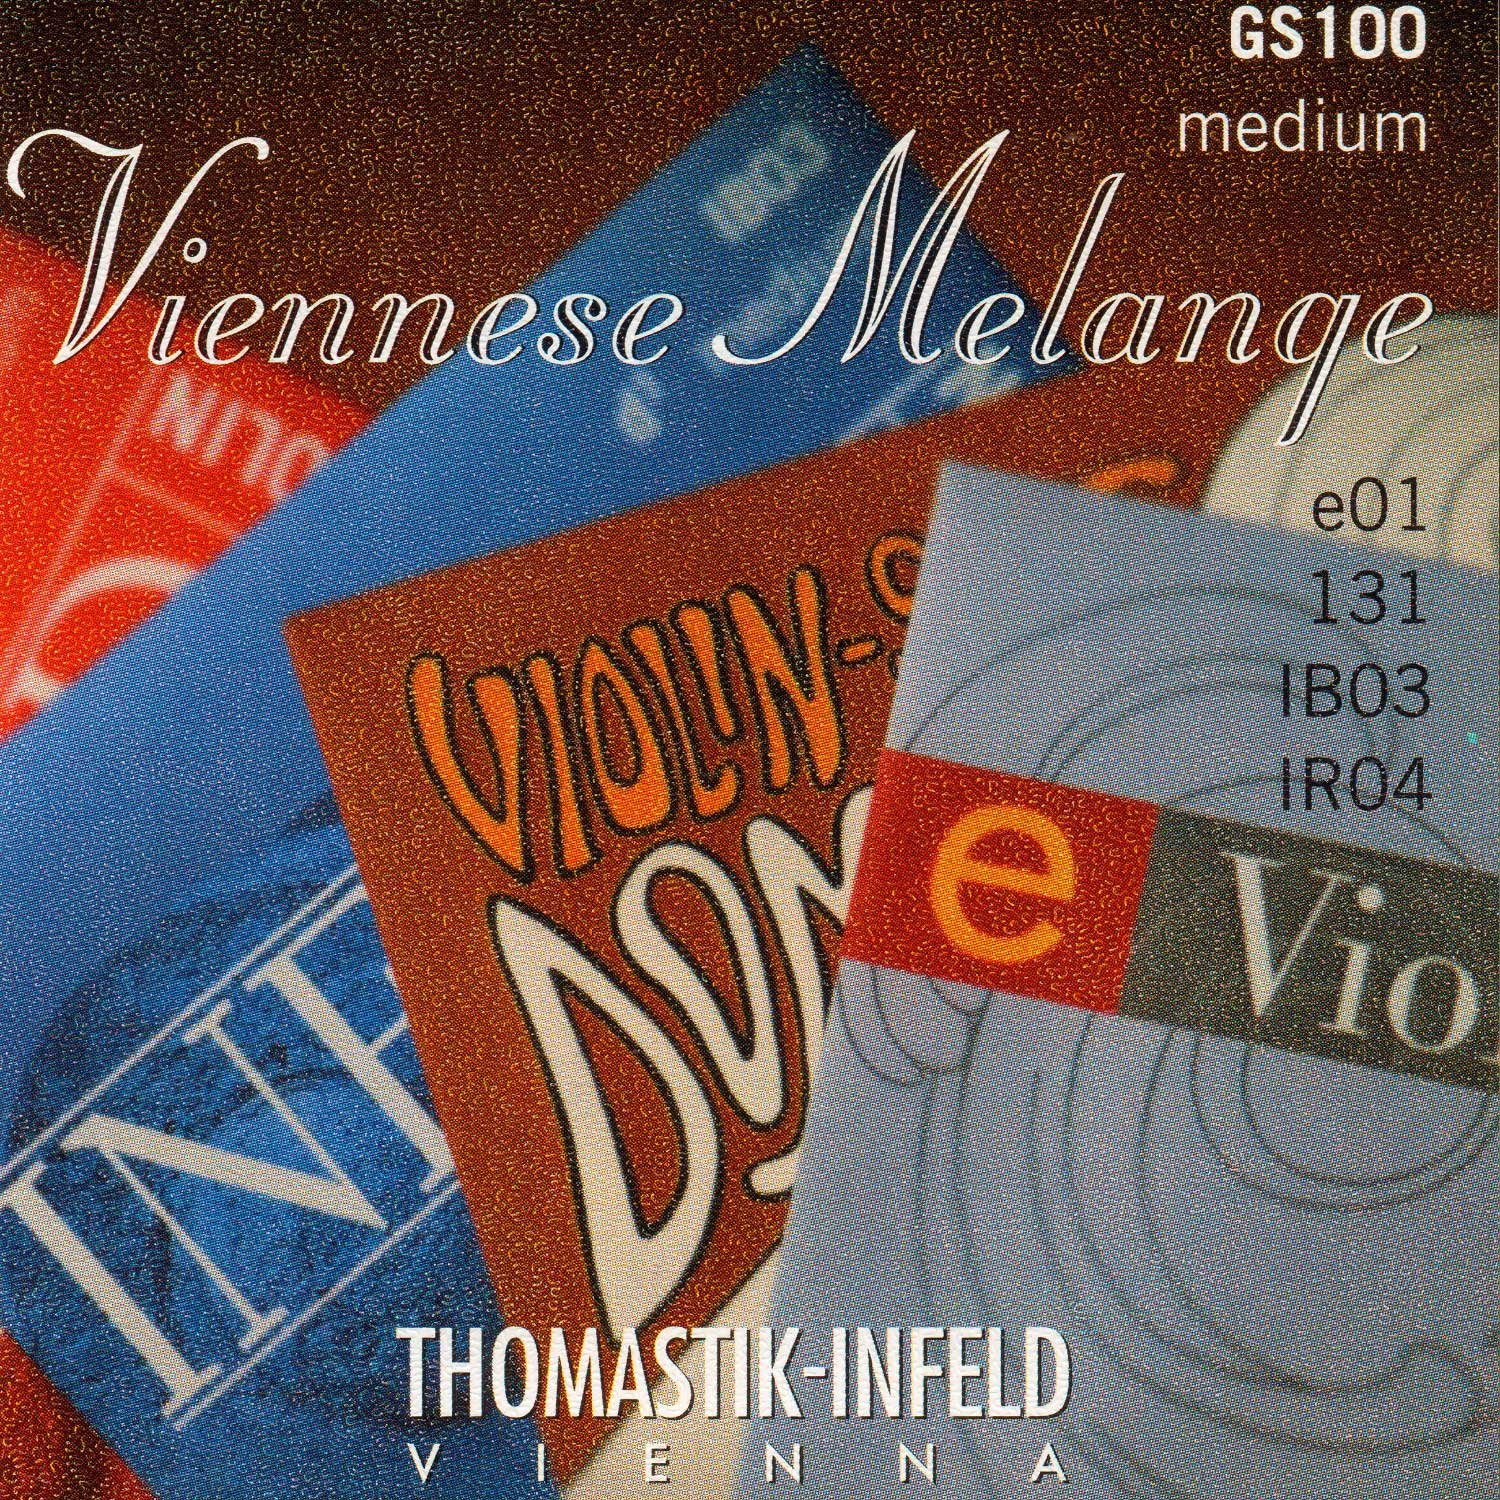 Thomastik Viennese Melange 4/4 Violin String Set - Medium Gauge with Removeable Ball-end E